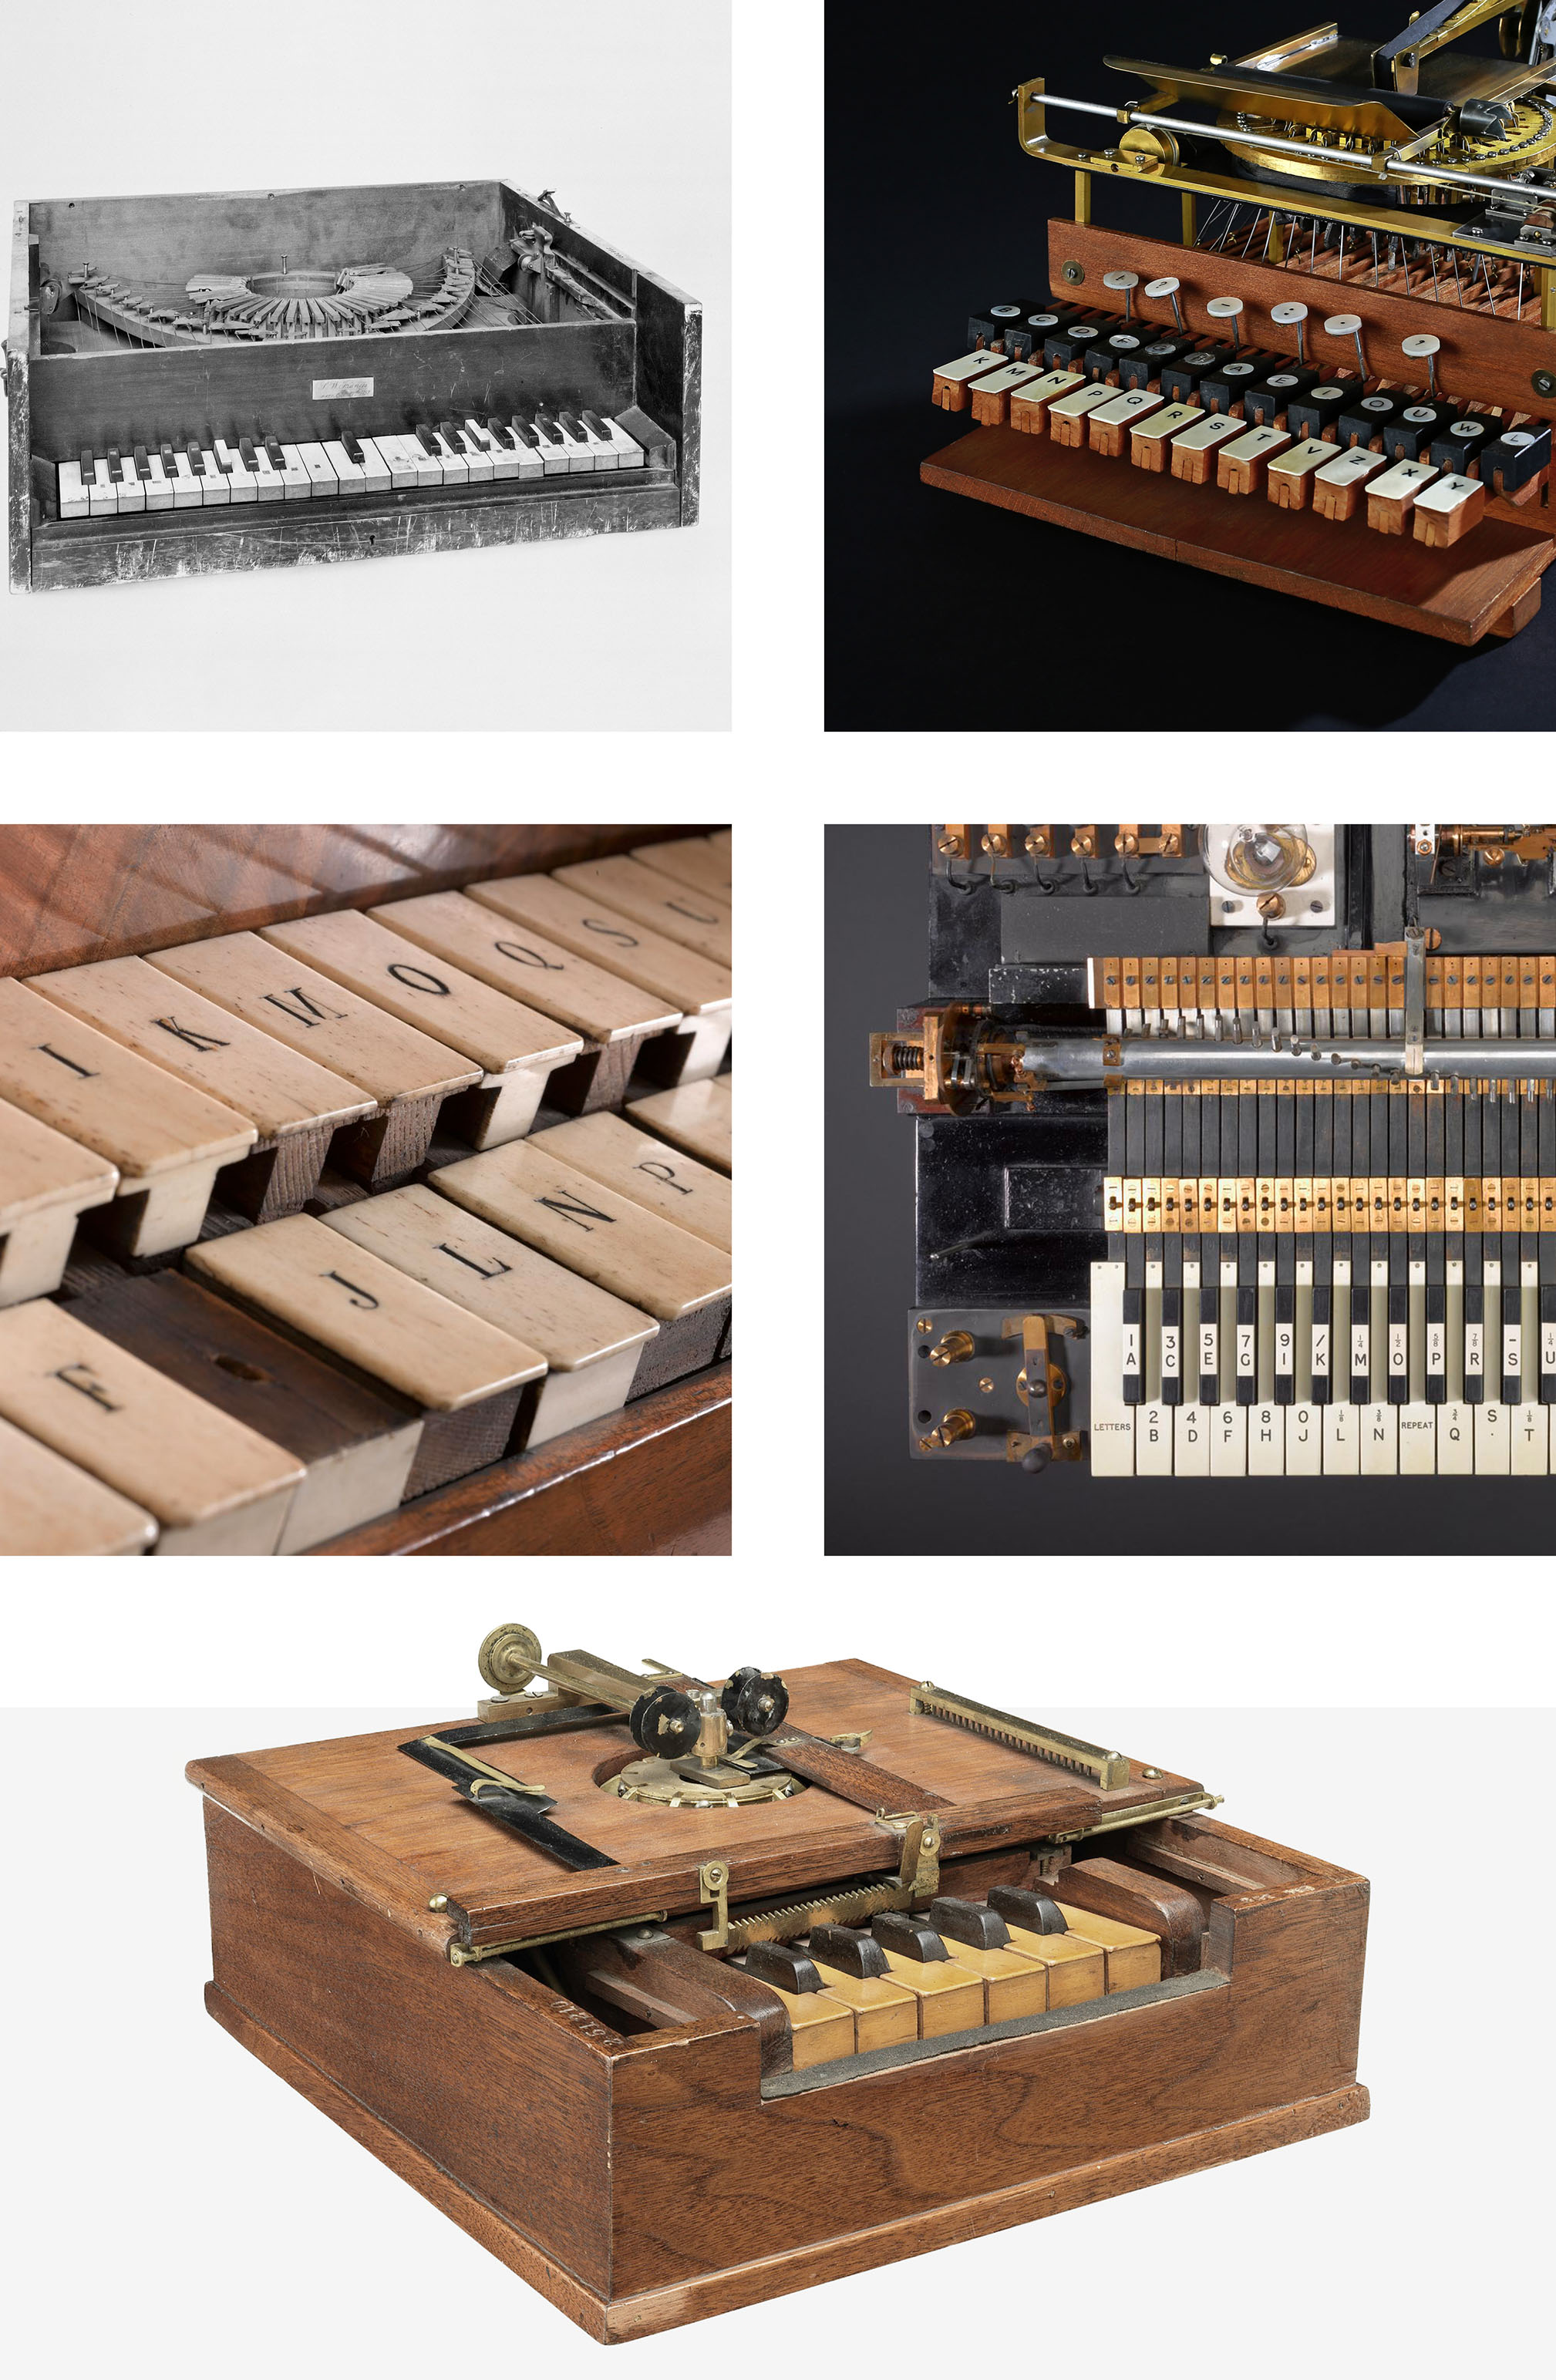 From top left: 1857 Francis Literary Piano, 1855 Cembalo Scrivano, 1840s transmitting keyboard, 1907 stock exchange printing telegraph